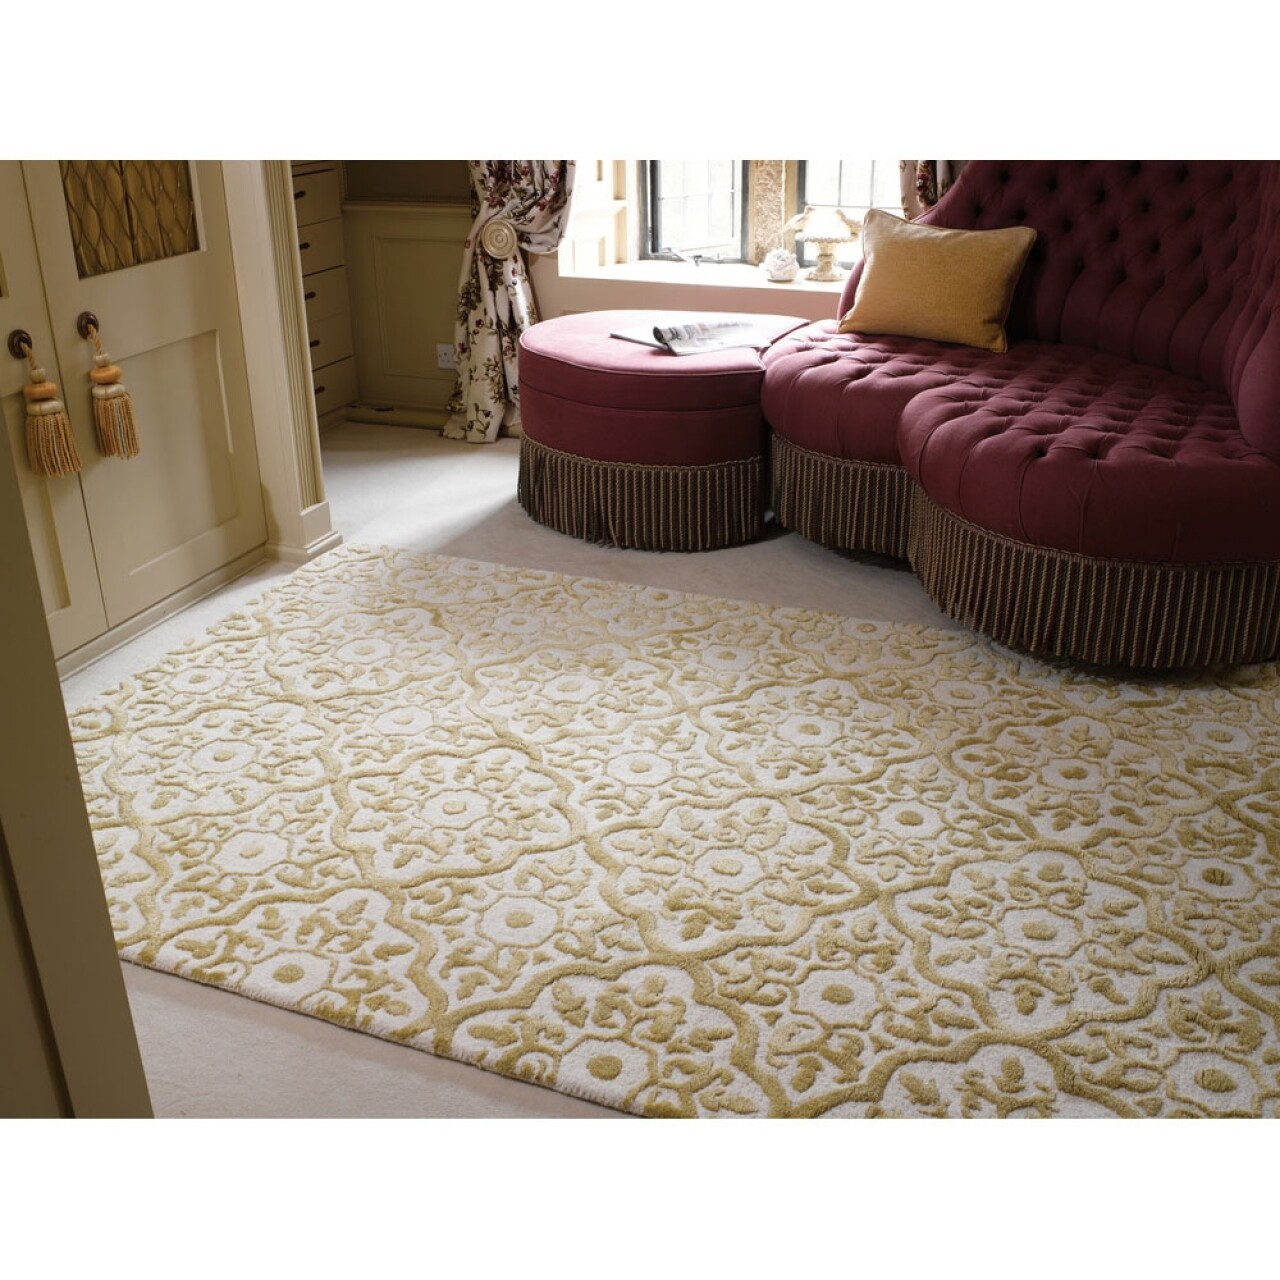 Covor Mayfair Knightsbridge Gold 120X170 cm